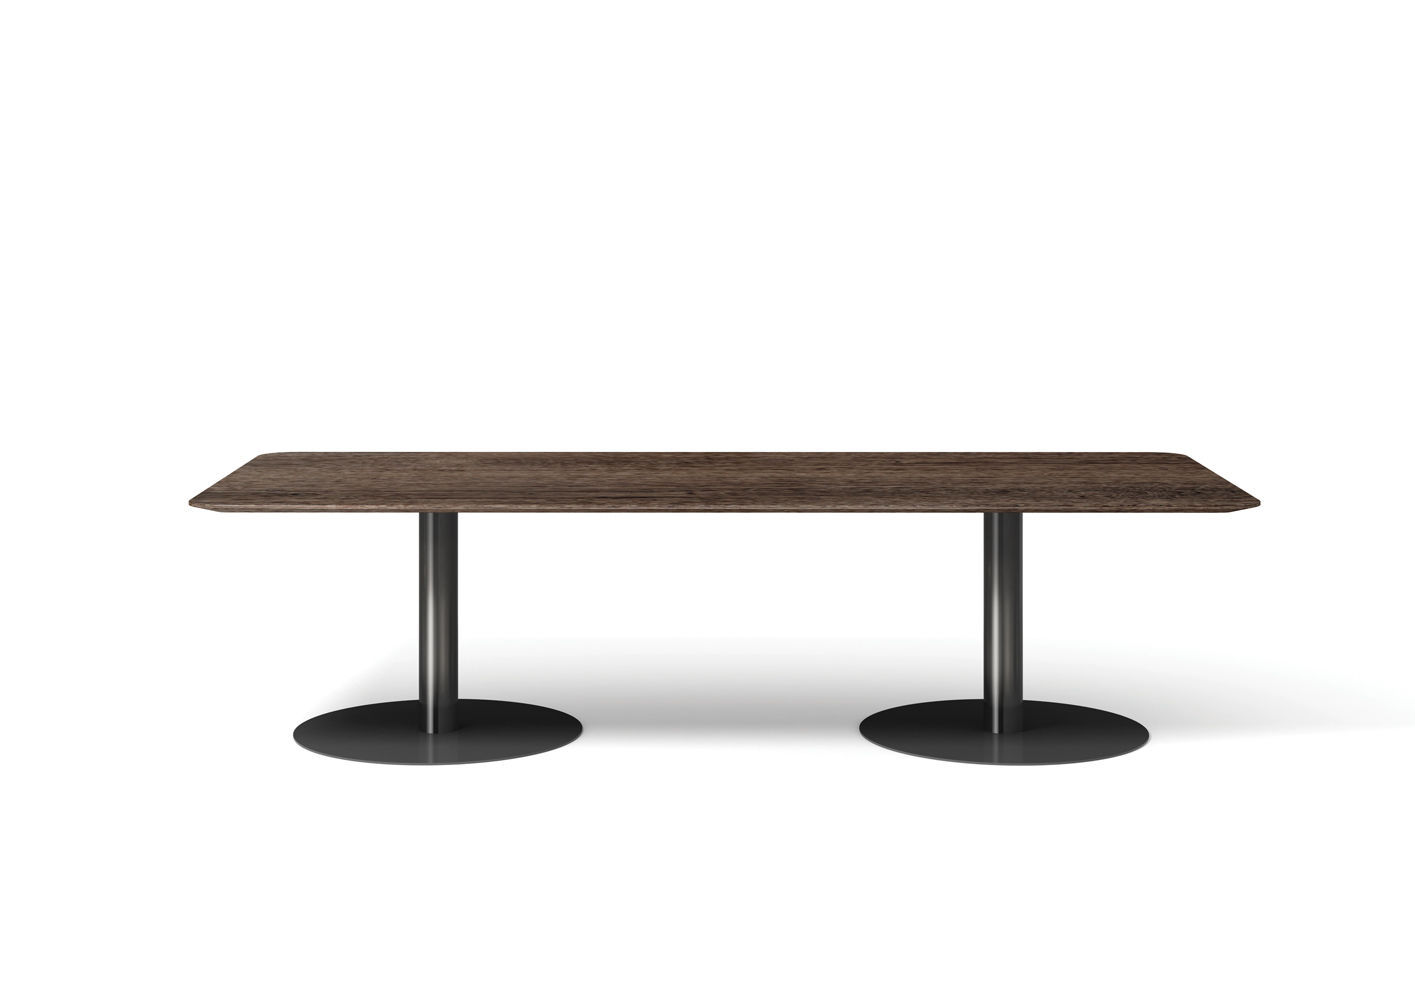 ... Contemporary Dining Table / Wooden / Metal / Rectangular BELLAGIO By  Gordon Guillaumier Minotti ...